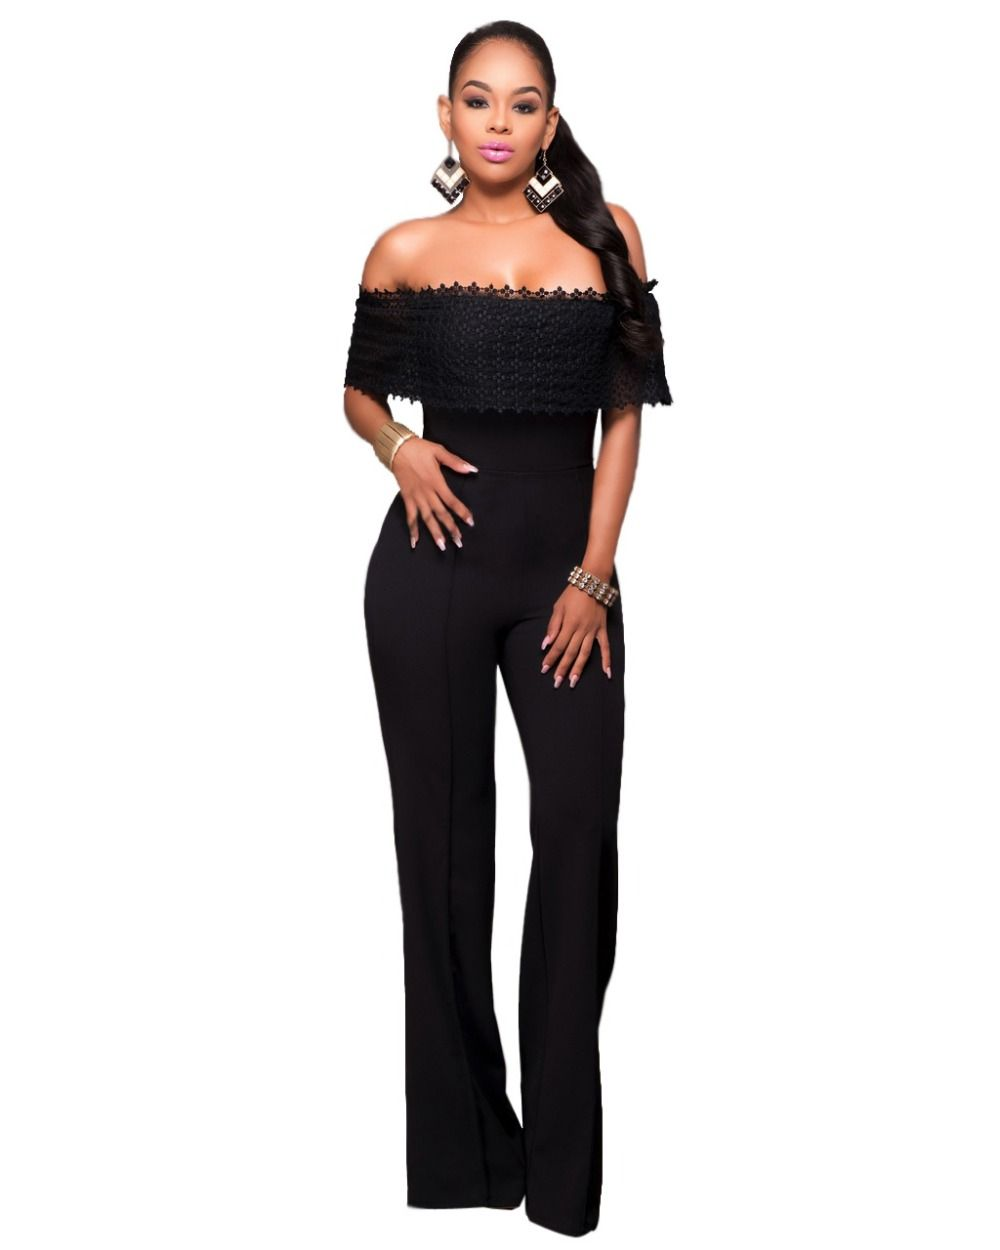 8c270209bb48 Adogirl Women Lace Cape Cloak Jumpsuits Black White Strapless Rompers 2016  Lady Sexy Club Long Pants Jumpsuit One Piece Overalls